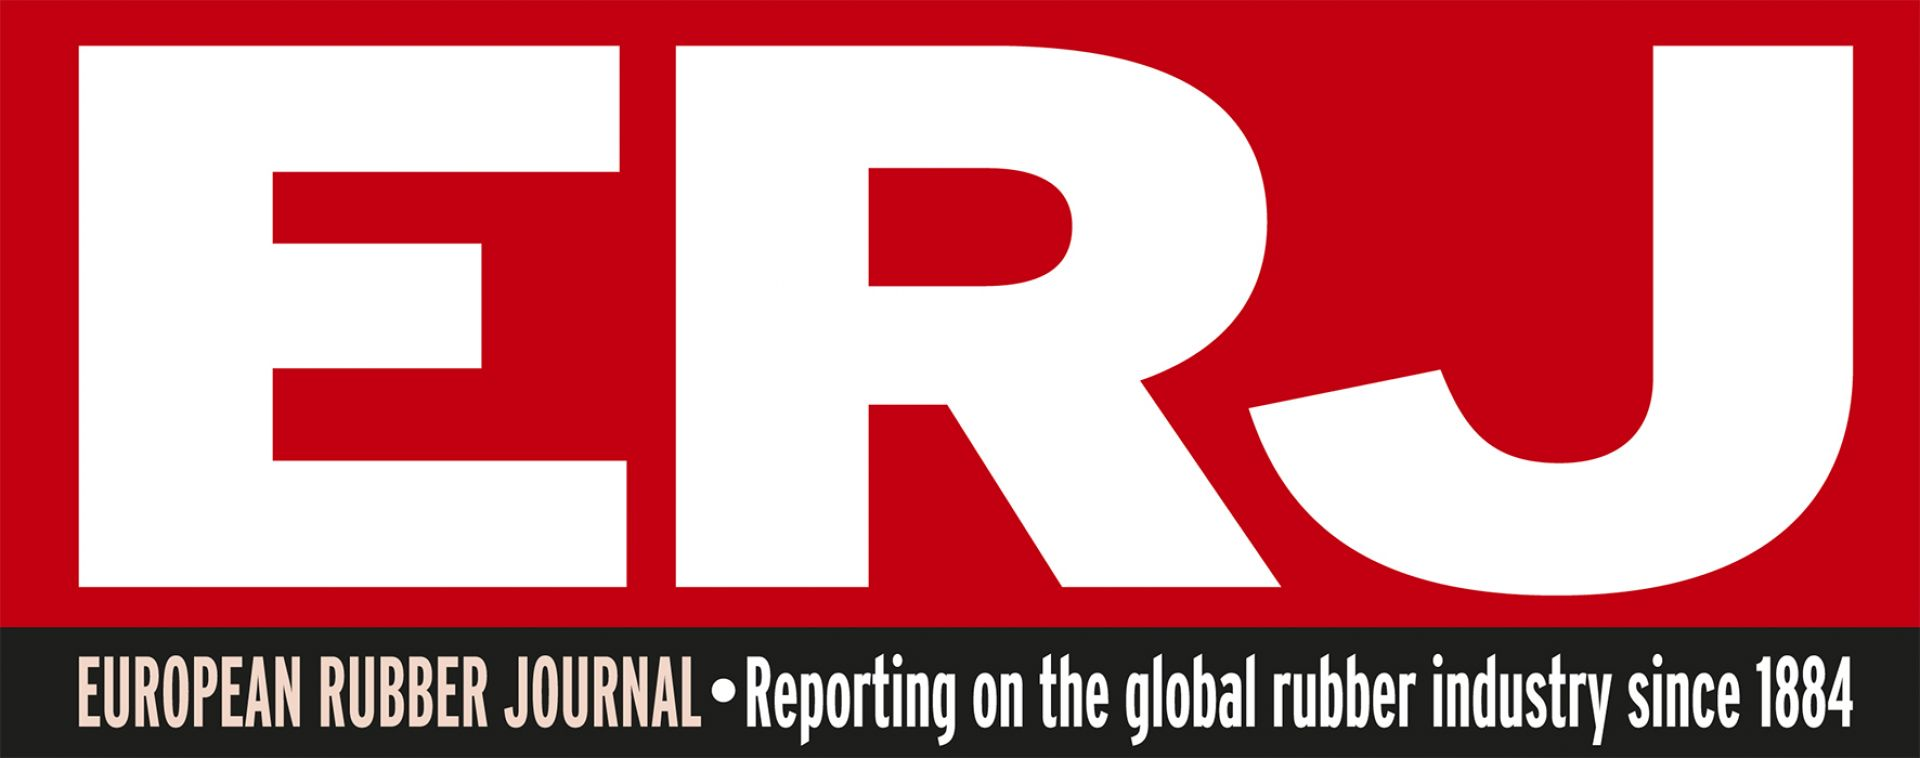 European Rubber Journal